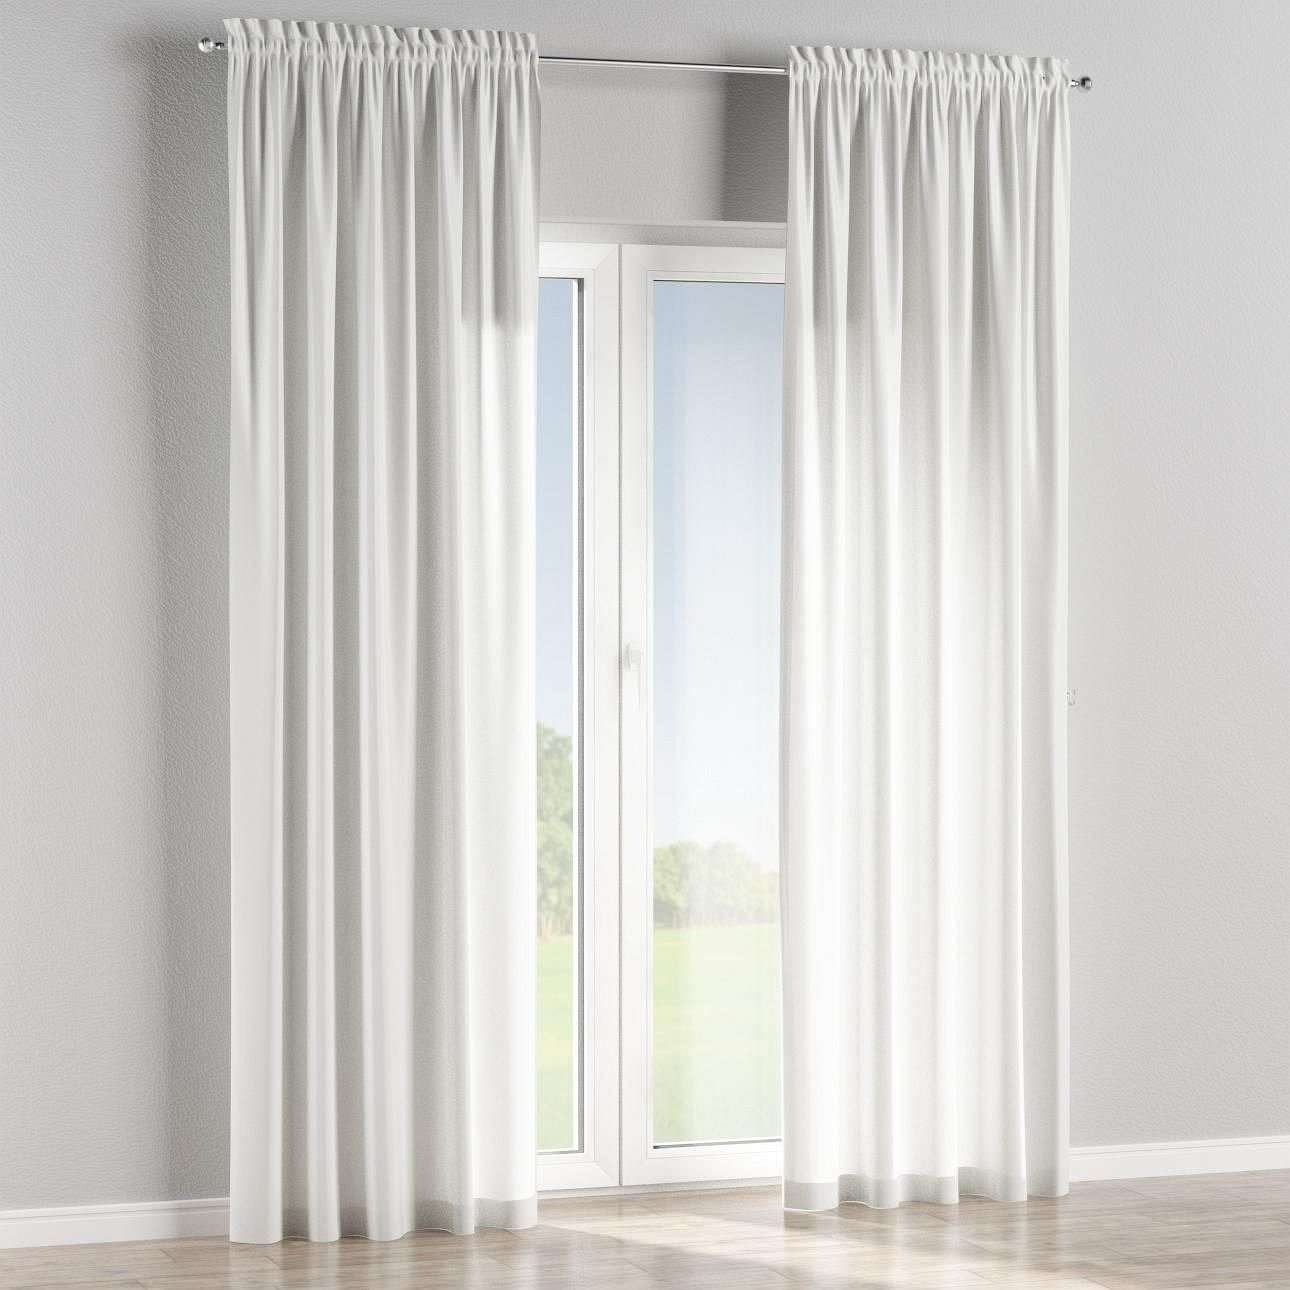 Slot and frill lined curtains in collection Bristol, fabric: 125-25